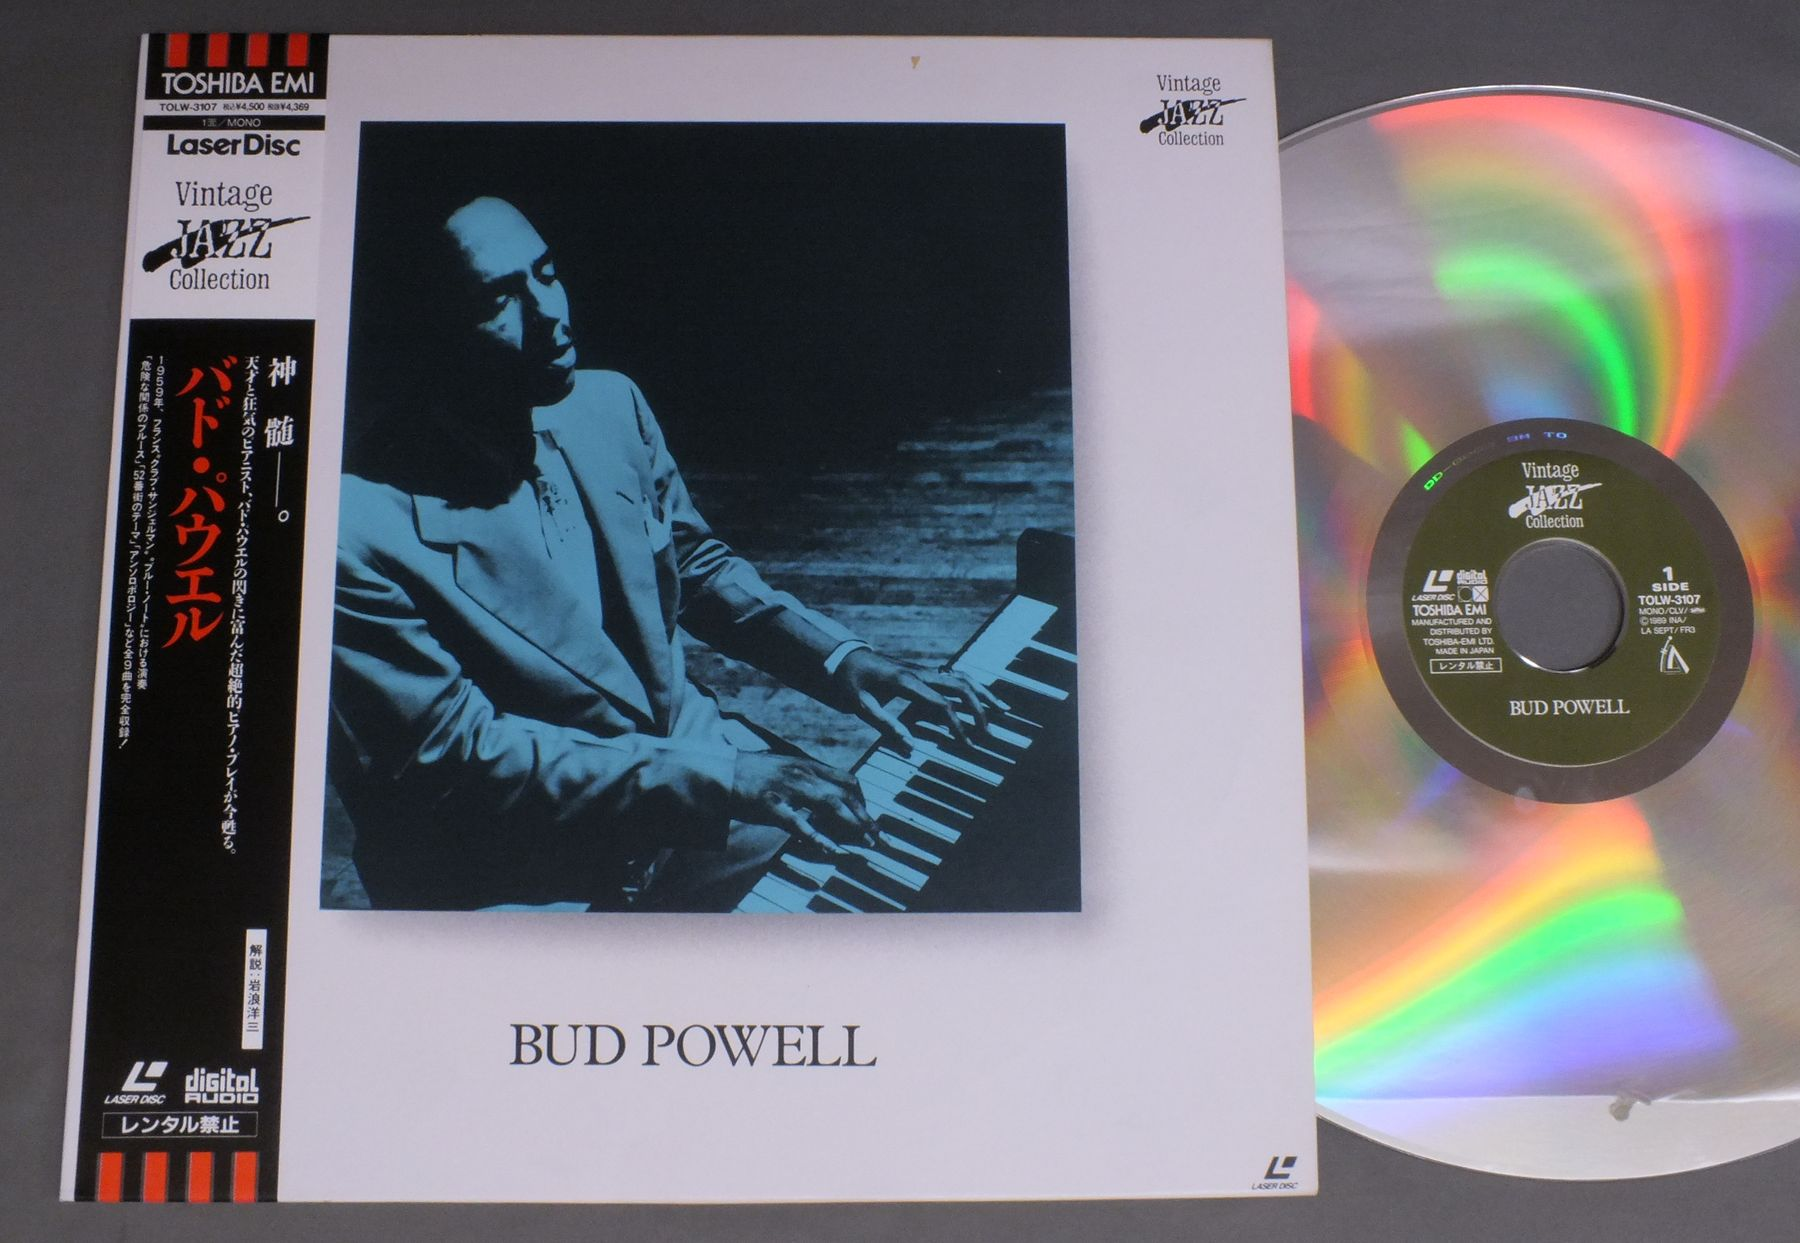 BUD POWELL - LIVE 1959 - Laser Disc